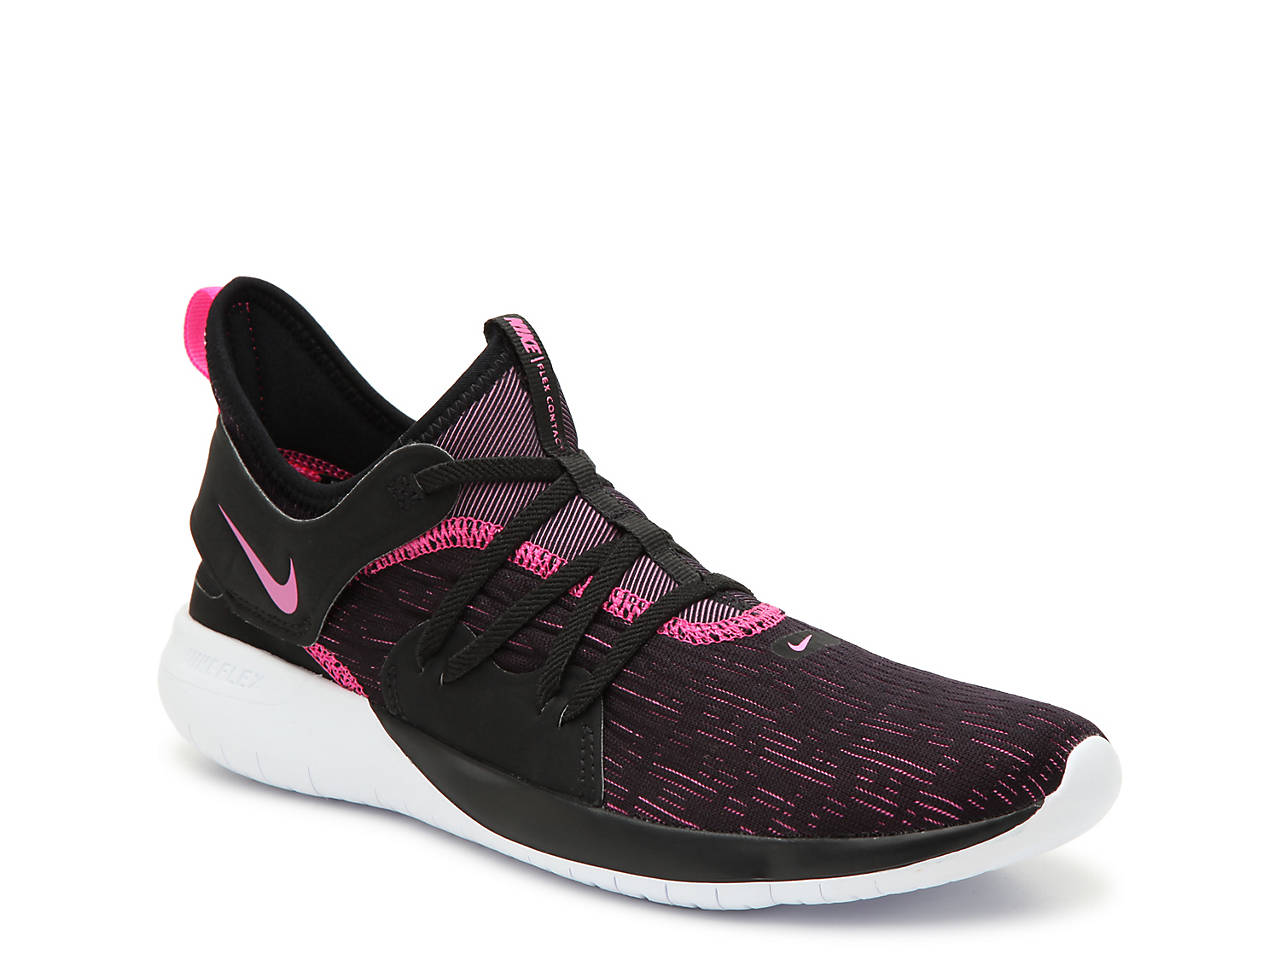 hot sale online a40db 4d8d6 Flex Contact 3 Lightweight Running Shoe - Women's